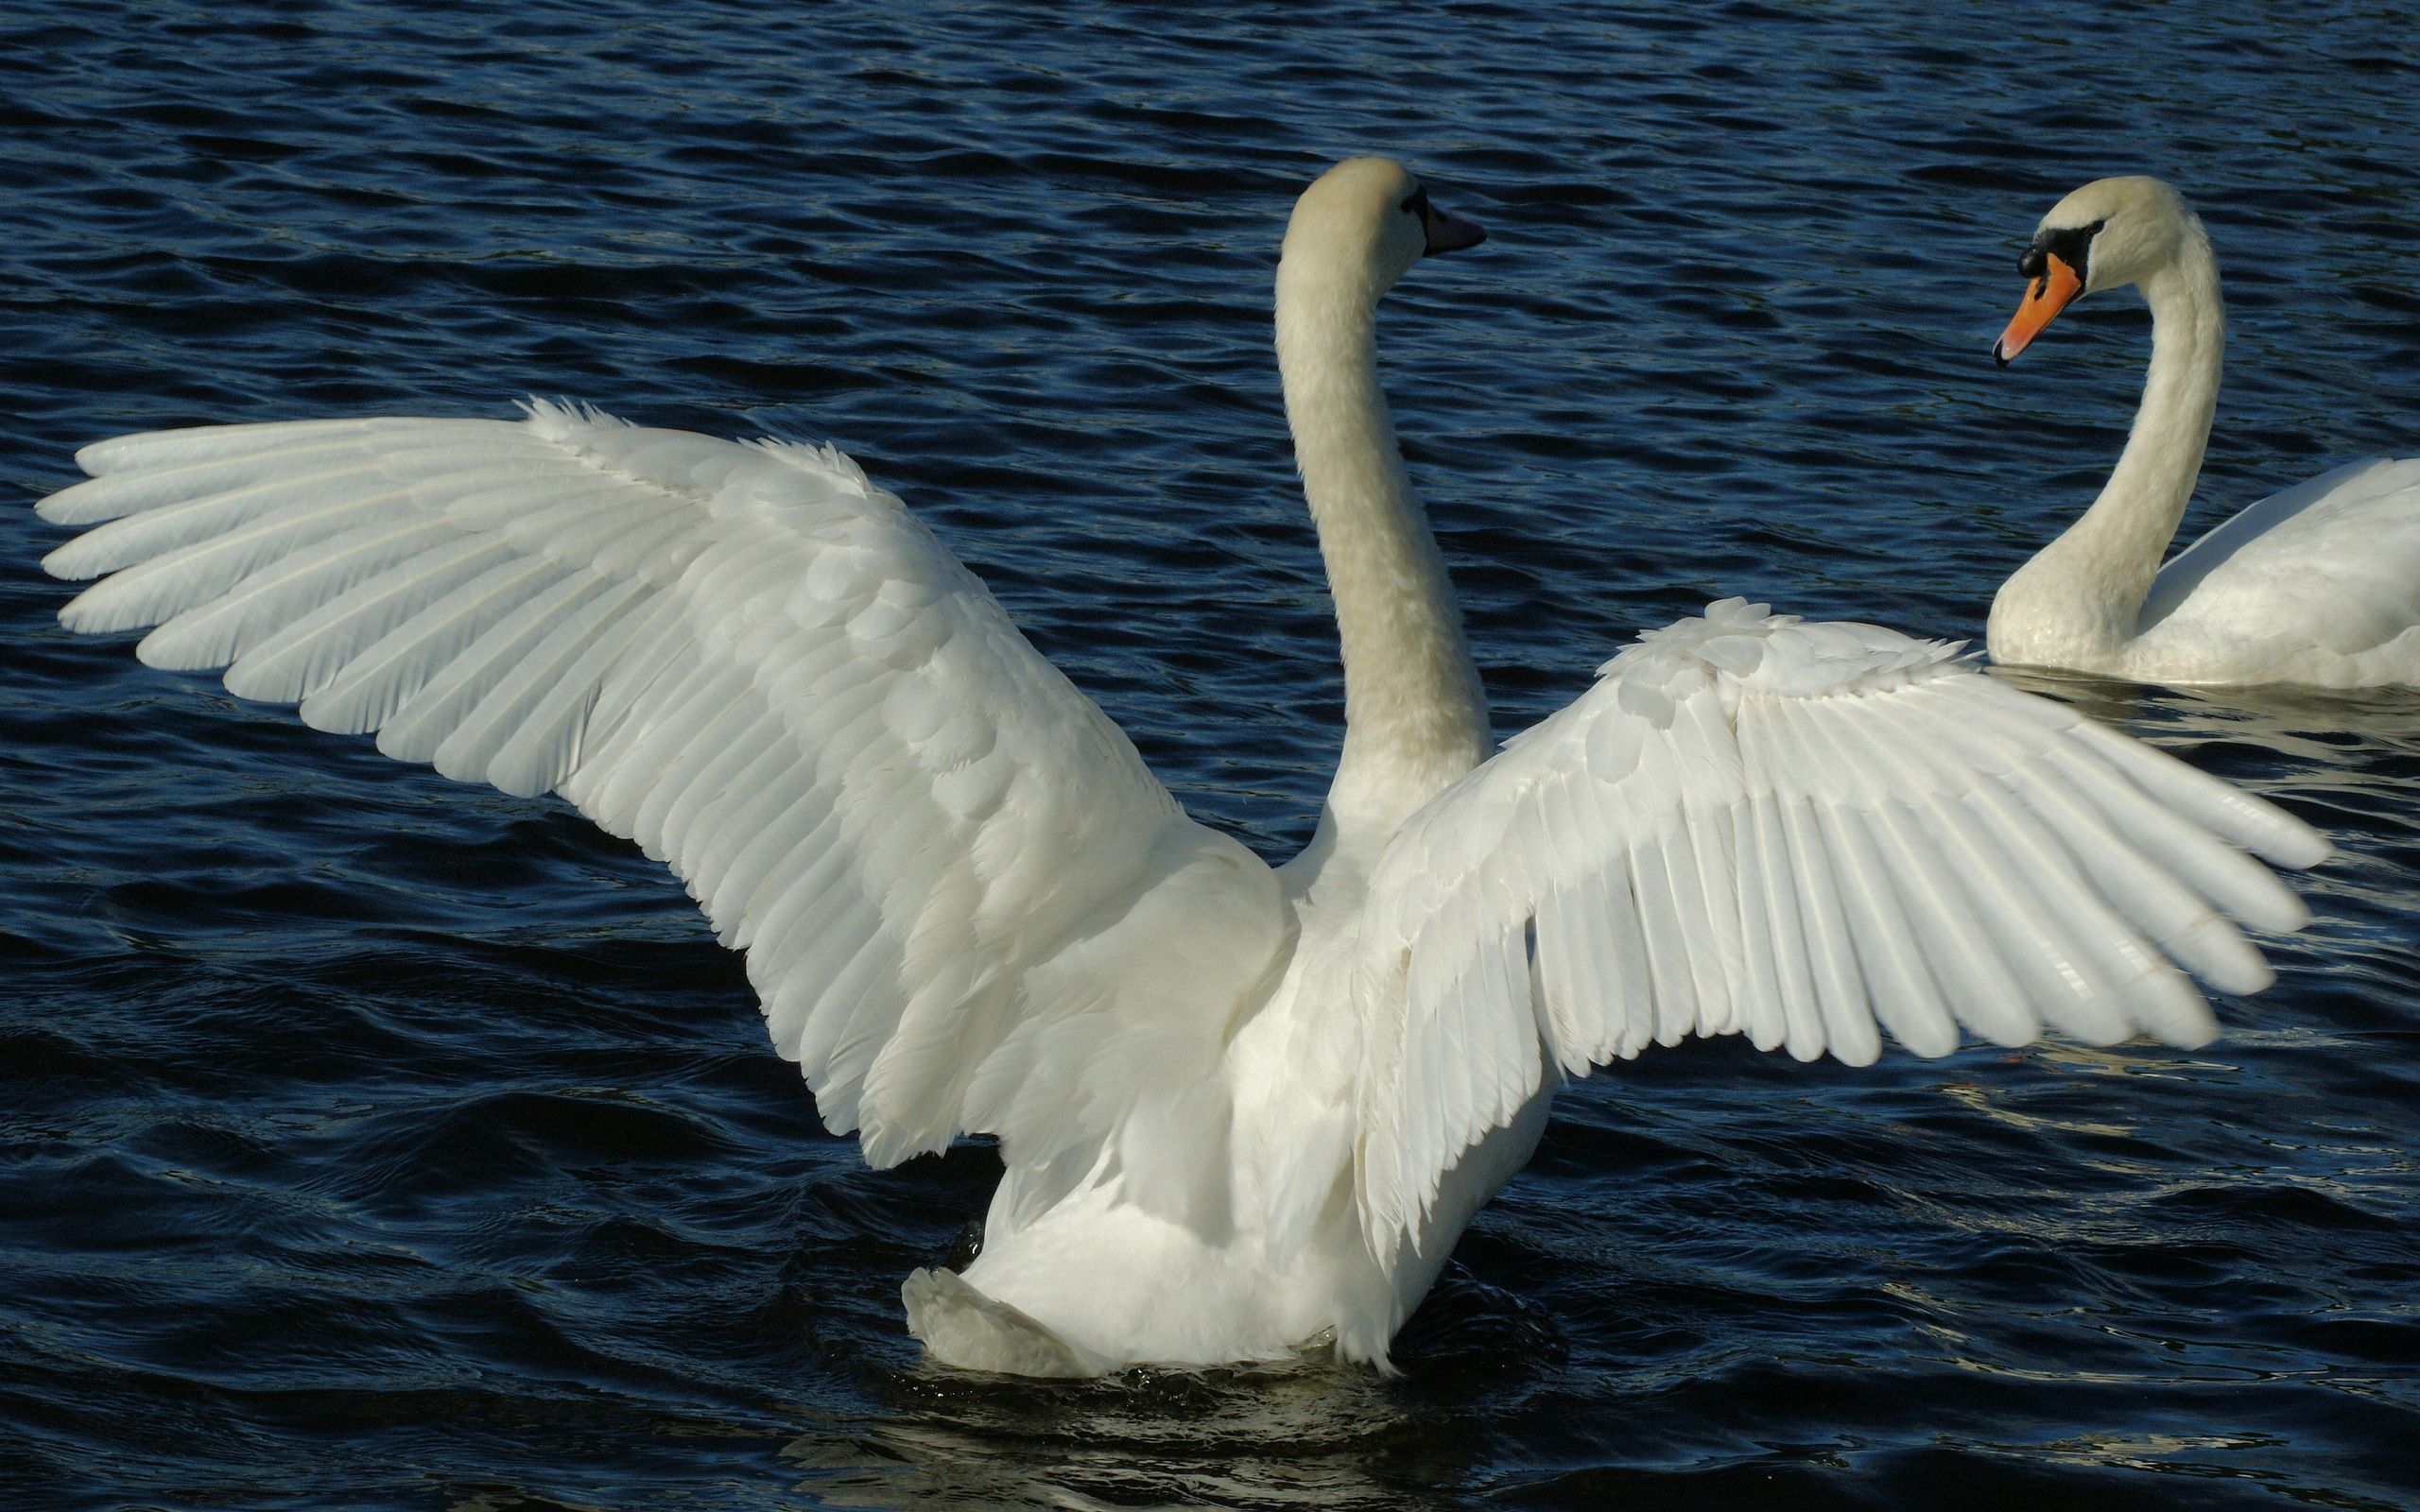 112421 download wallpaper Animals, Swans, Couple, Pair, Wings, Water, Swimming, Sweep, Wave screensavers and pictures for free